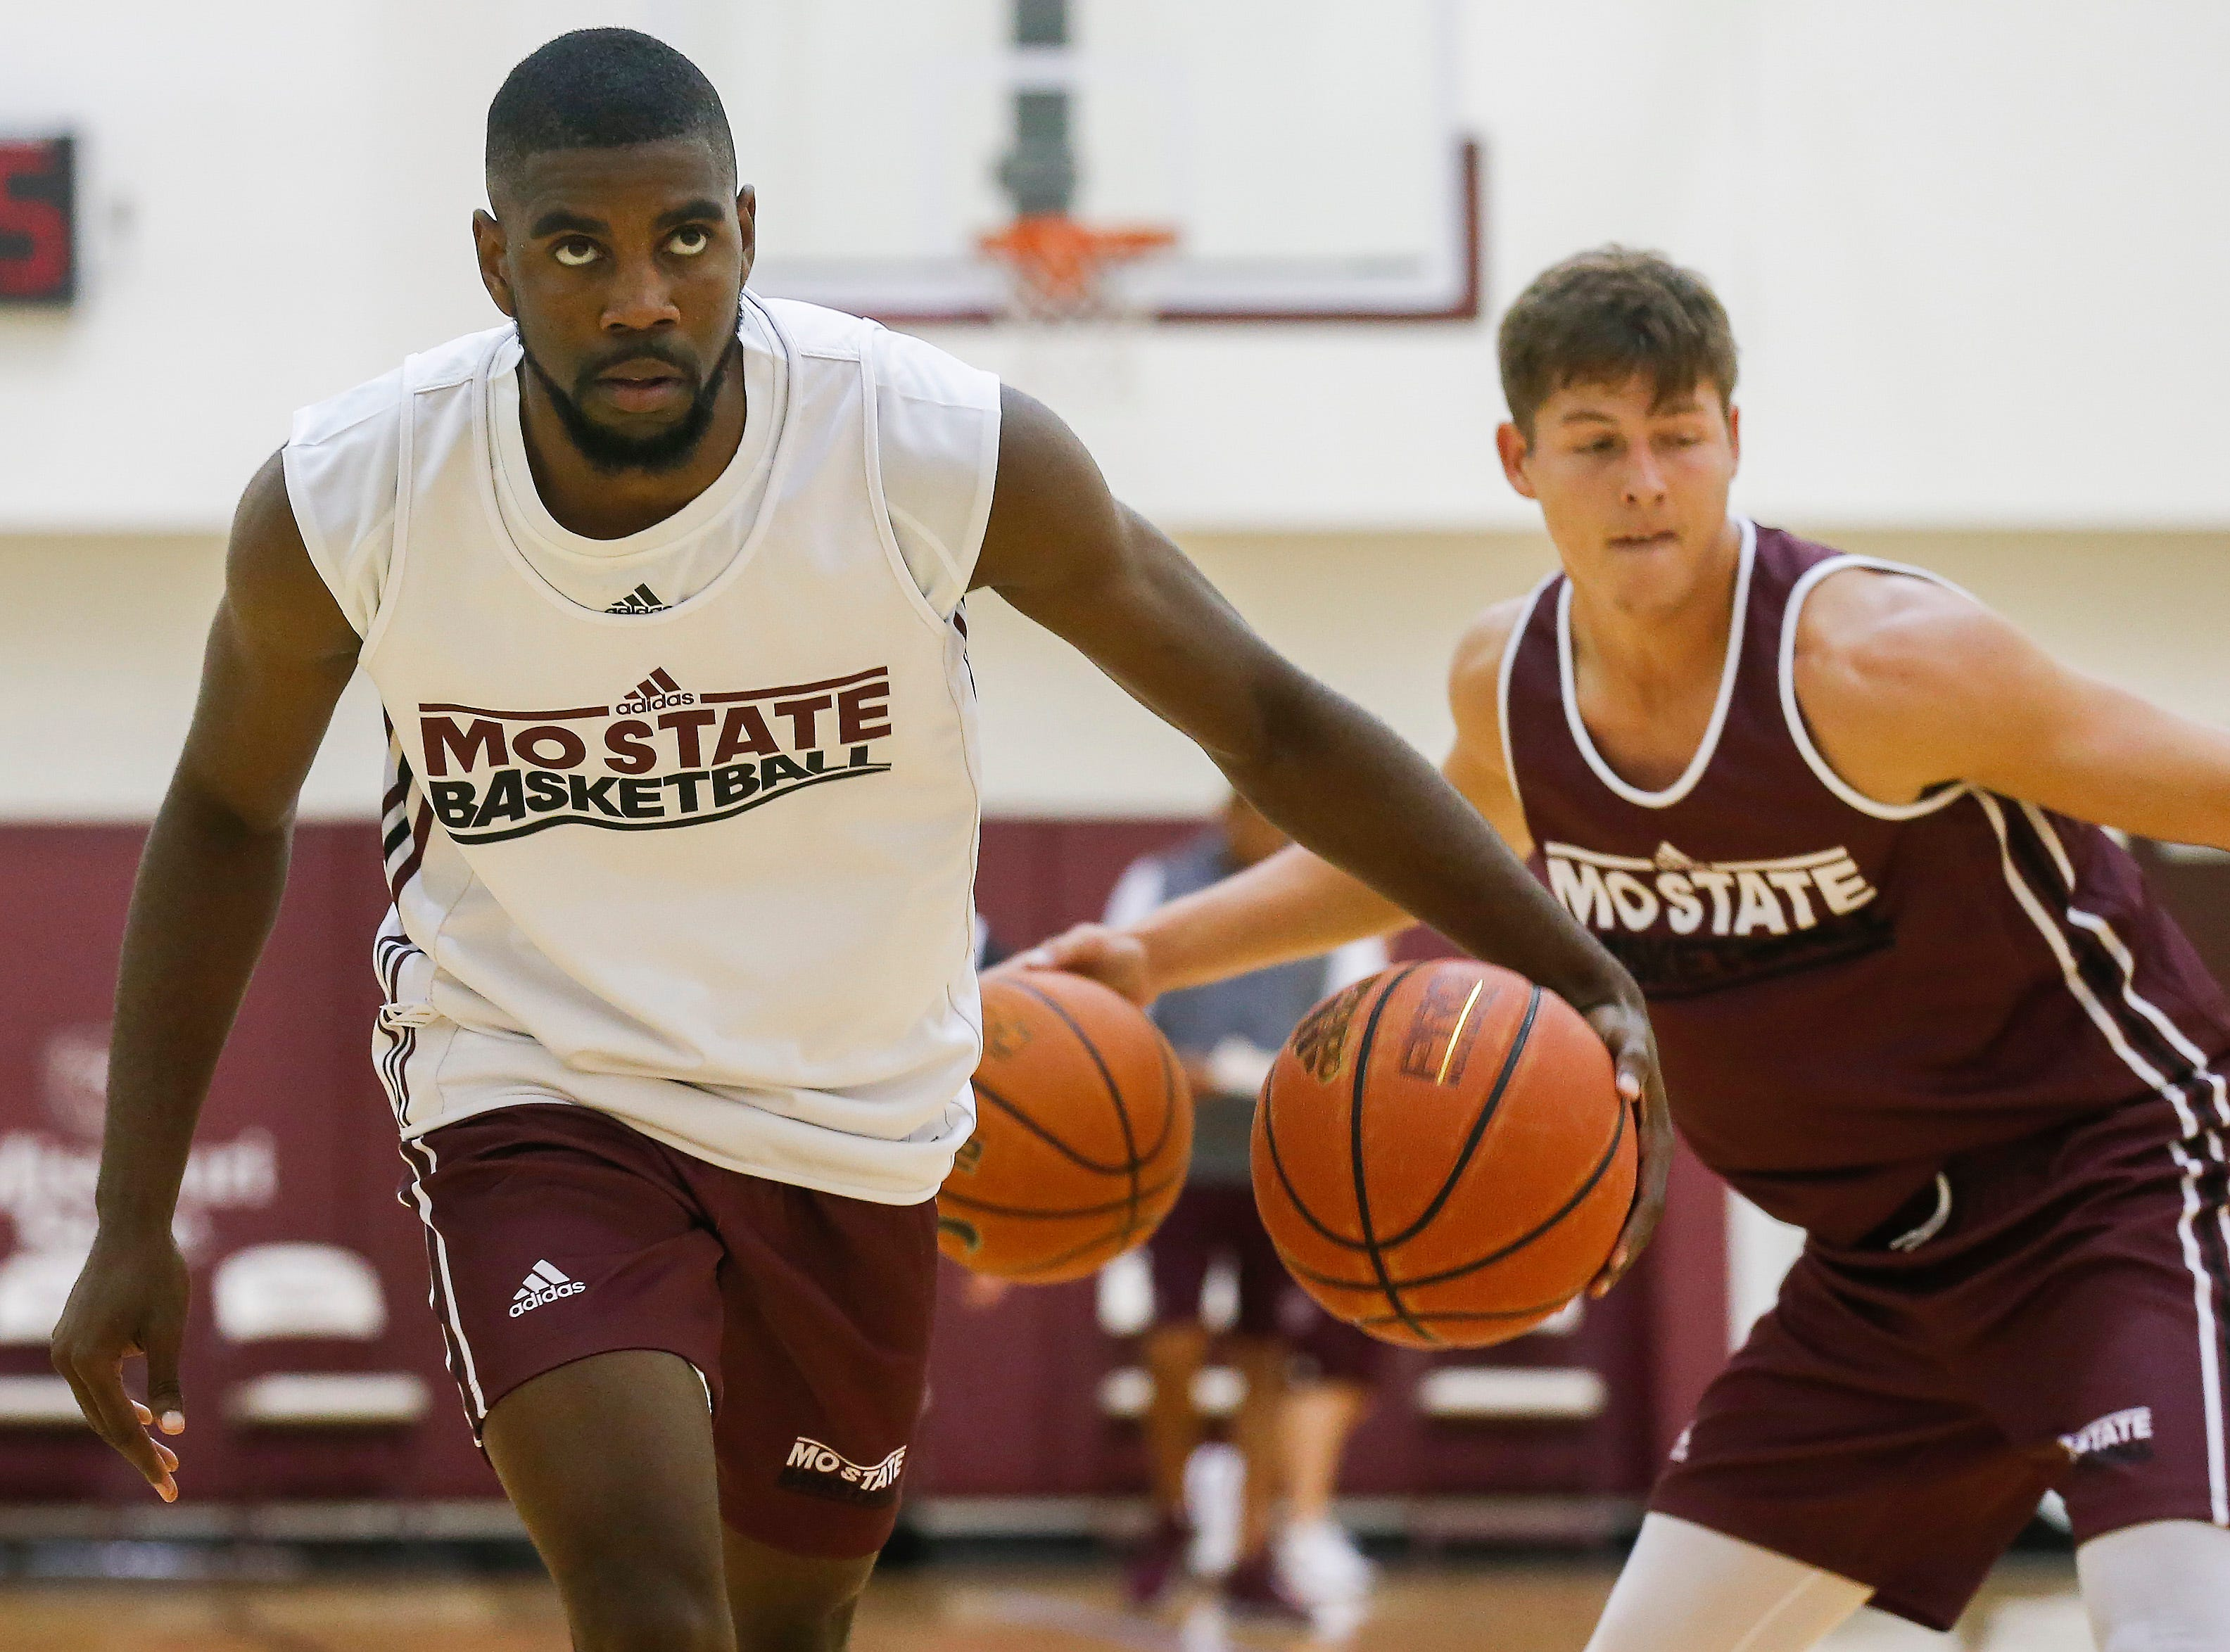 Josh Webster runs a drill during the Missouri State University men's basketball team's first practice of the season on Tuesday, Sept. 25, 2018.